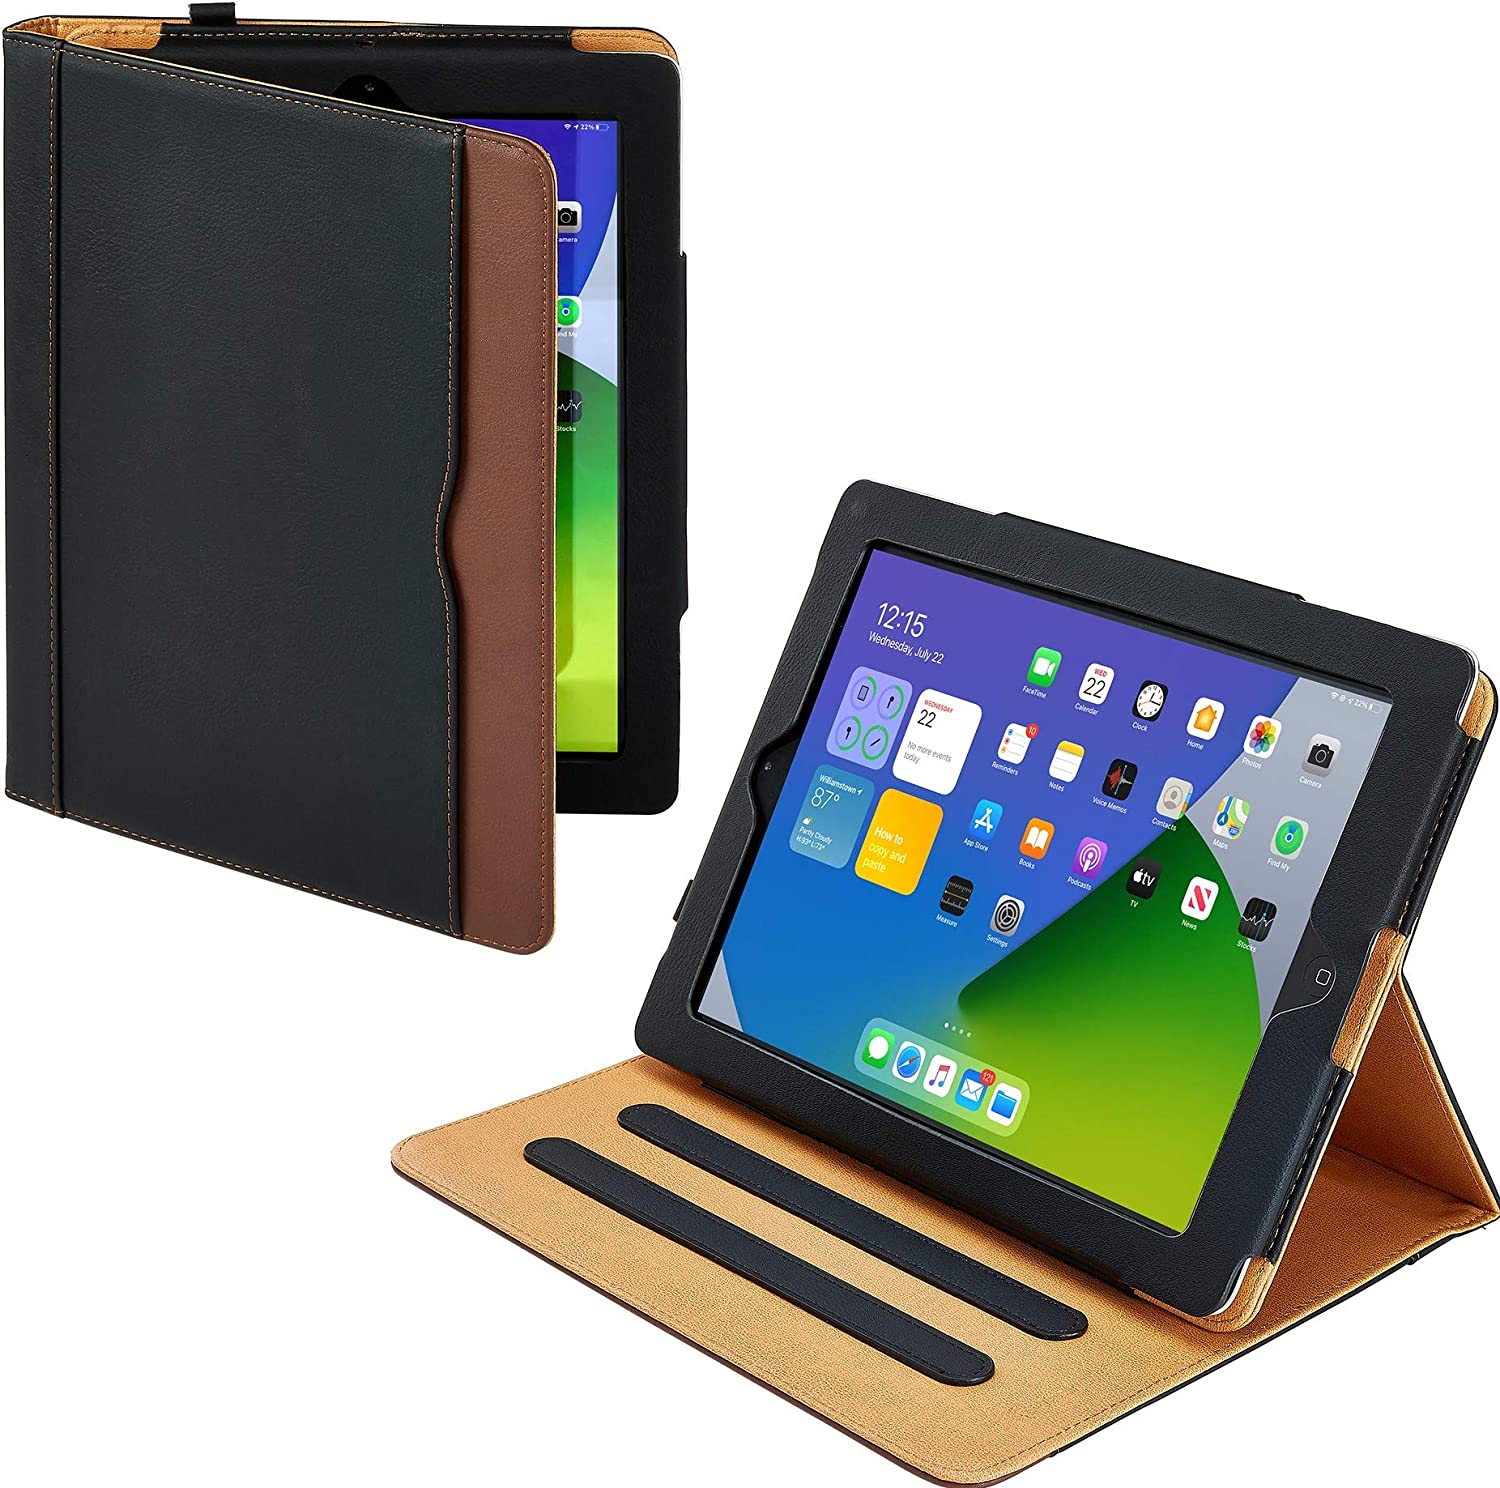 New S-Tech Black and Tan Apple iPad 2 3 4 Generation Soft Leather Wallet Smart Cover with Sleep/Wake Feature Flip Case